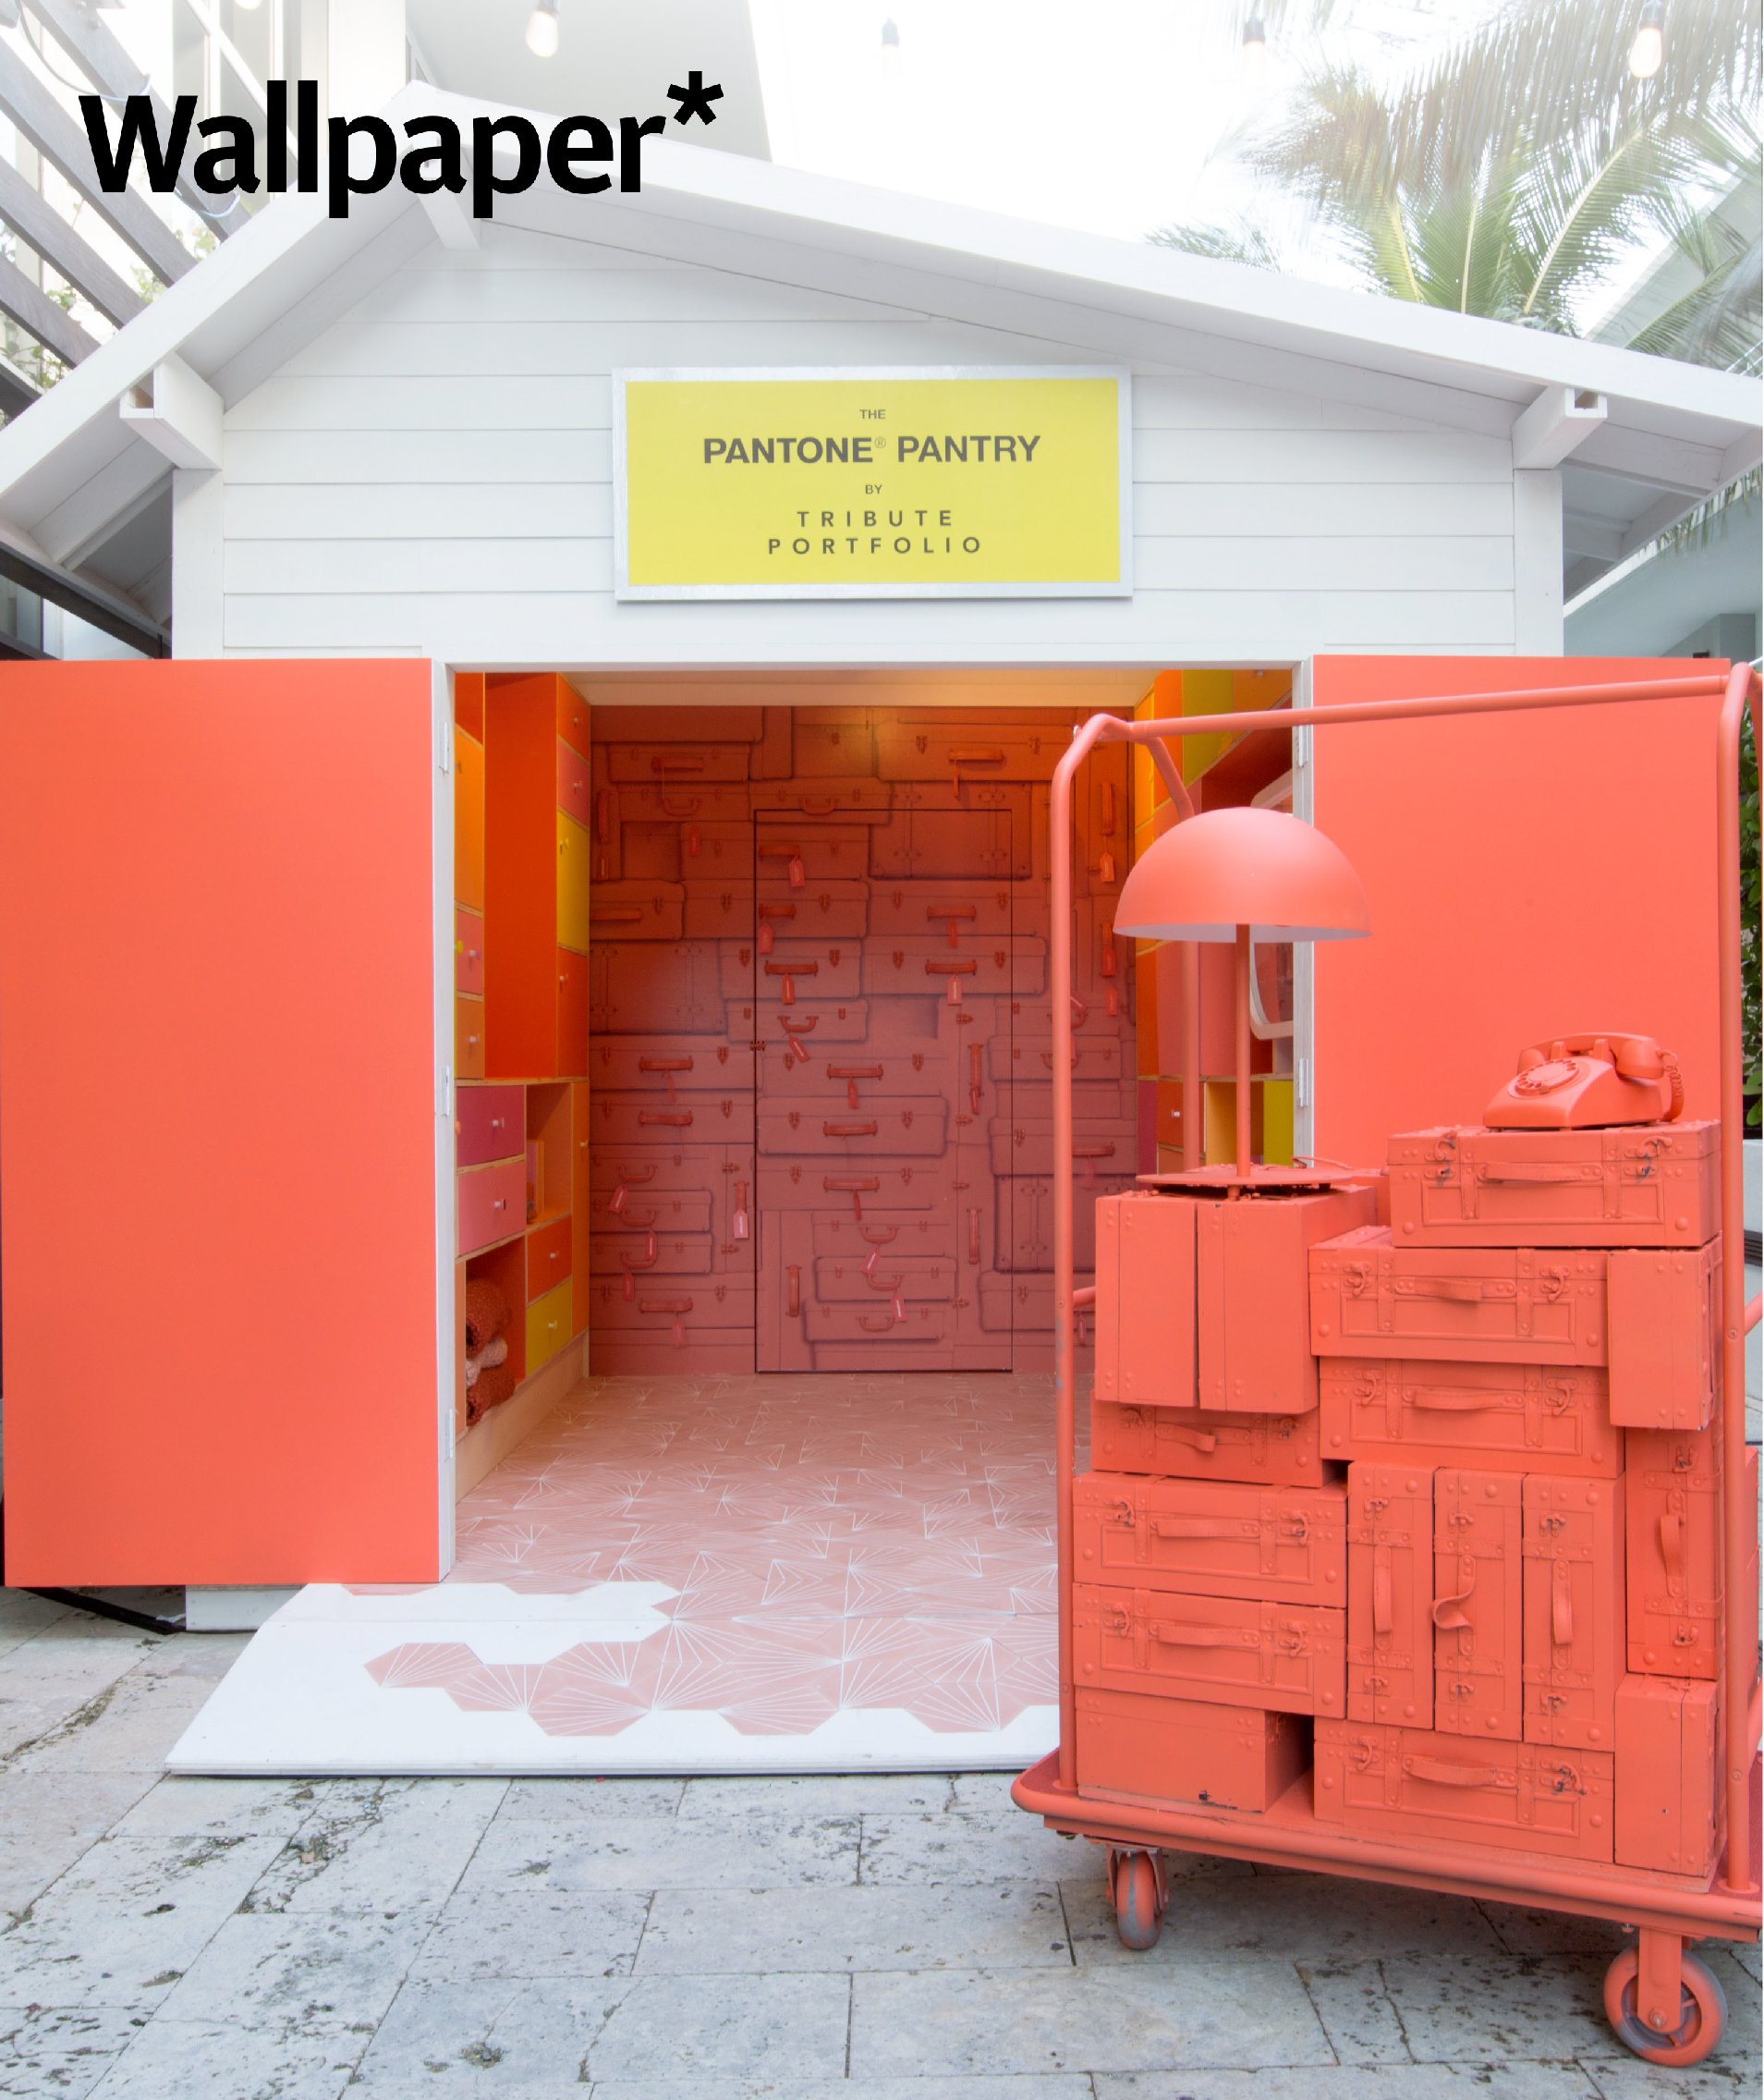 Multi-Sensory Brand Experiences - BMF x Tribute Portfolio x Pantone's color of the year pop-up pantry installation was featured in Wallpaper.